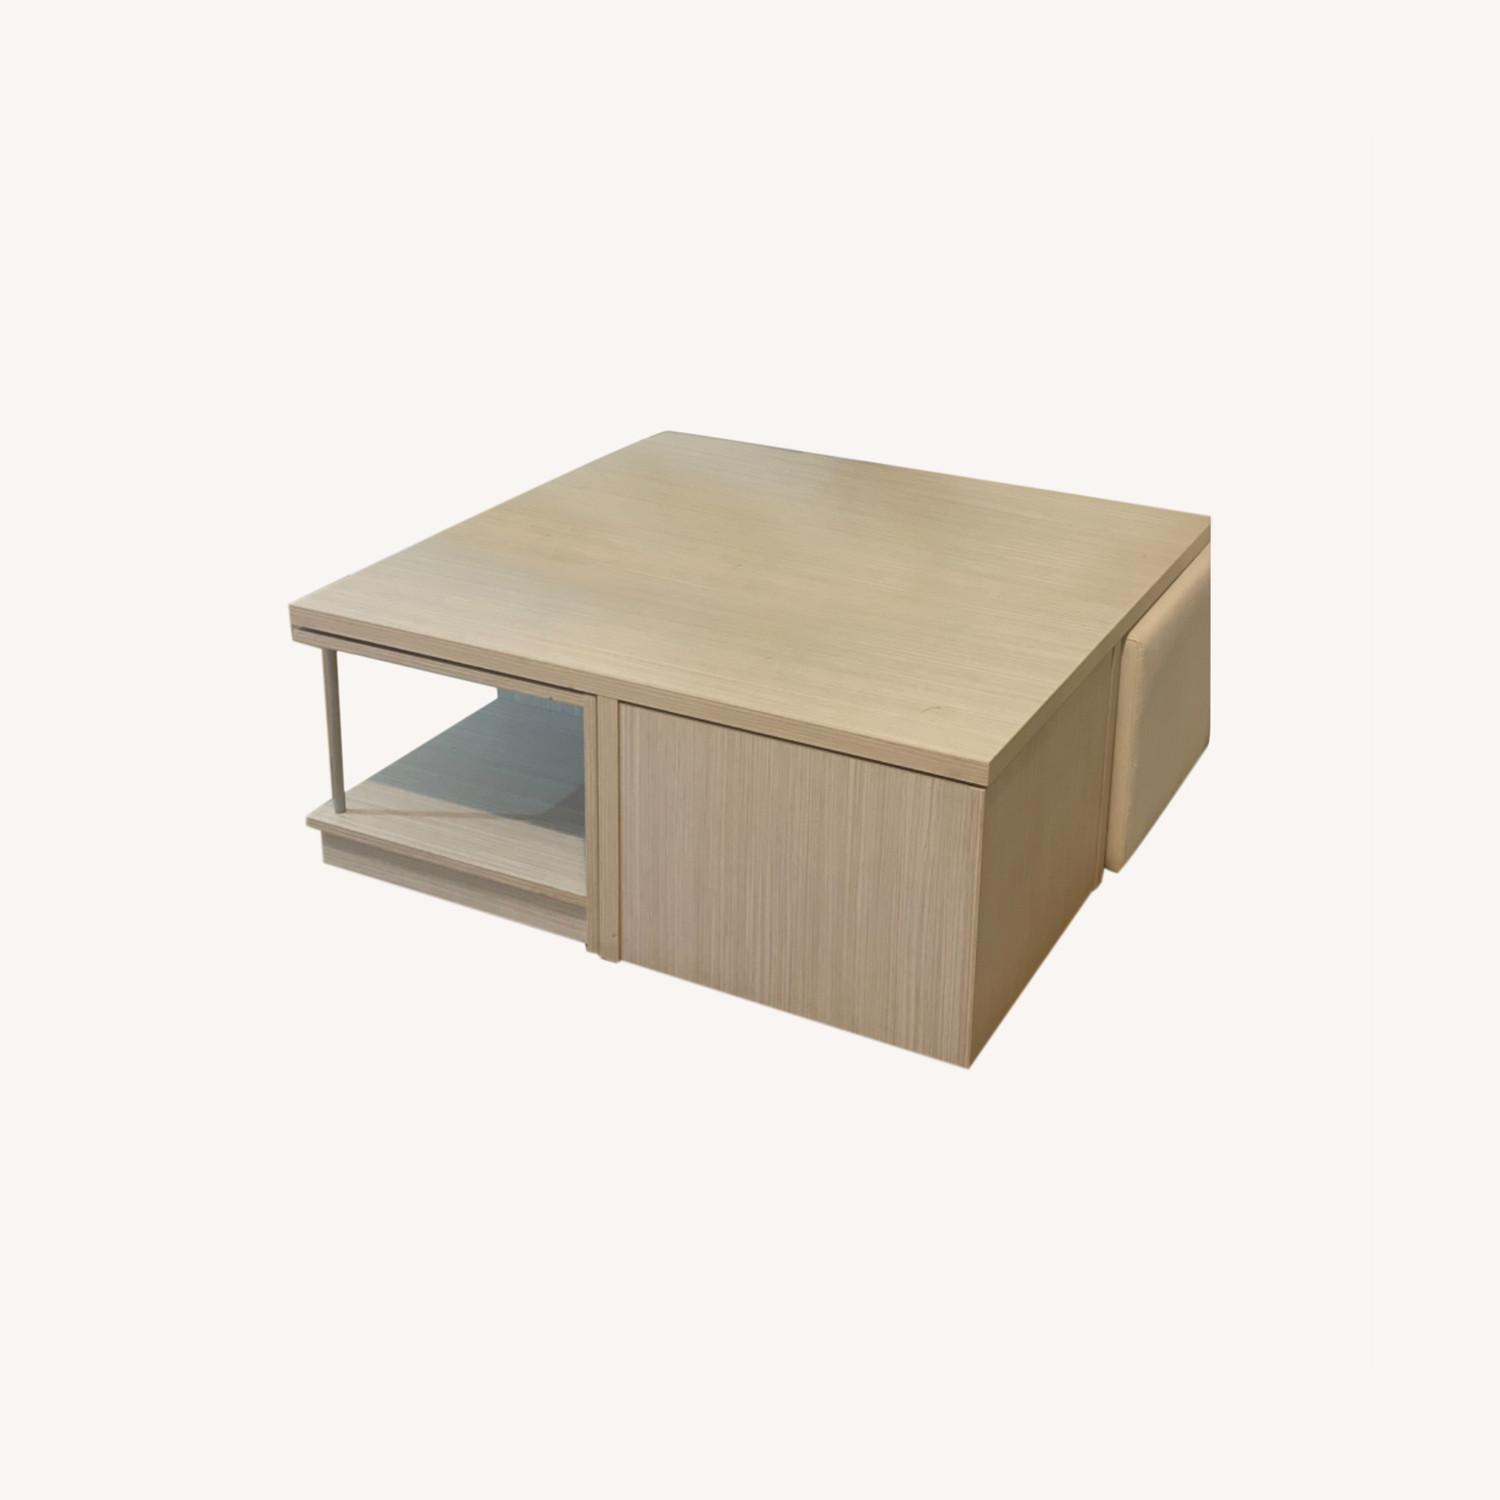 Modani Wooden Coffee Table with Ottoman Stools - image-0